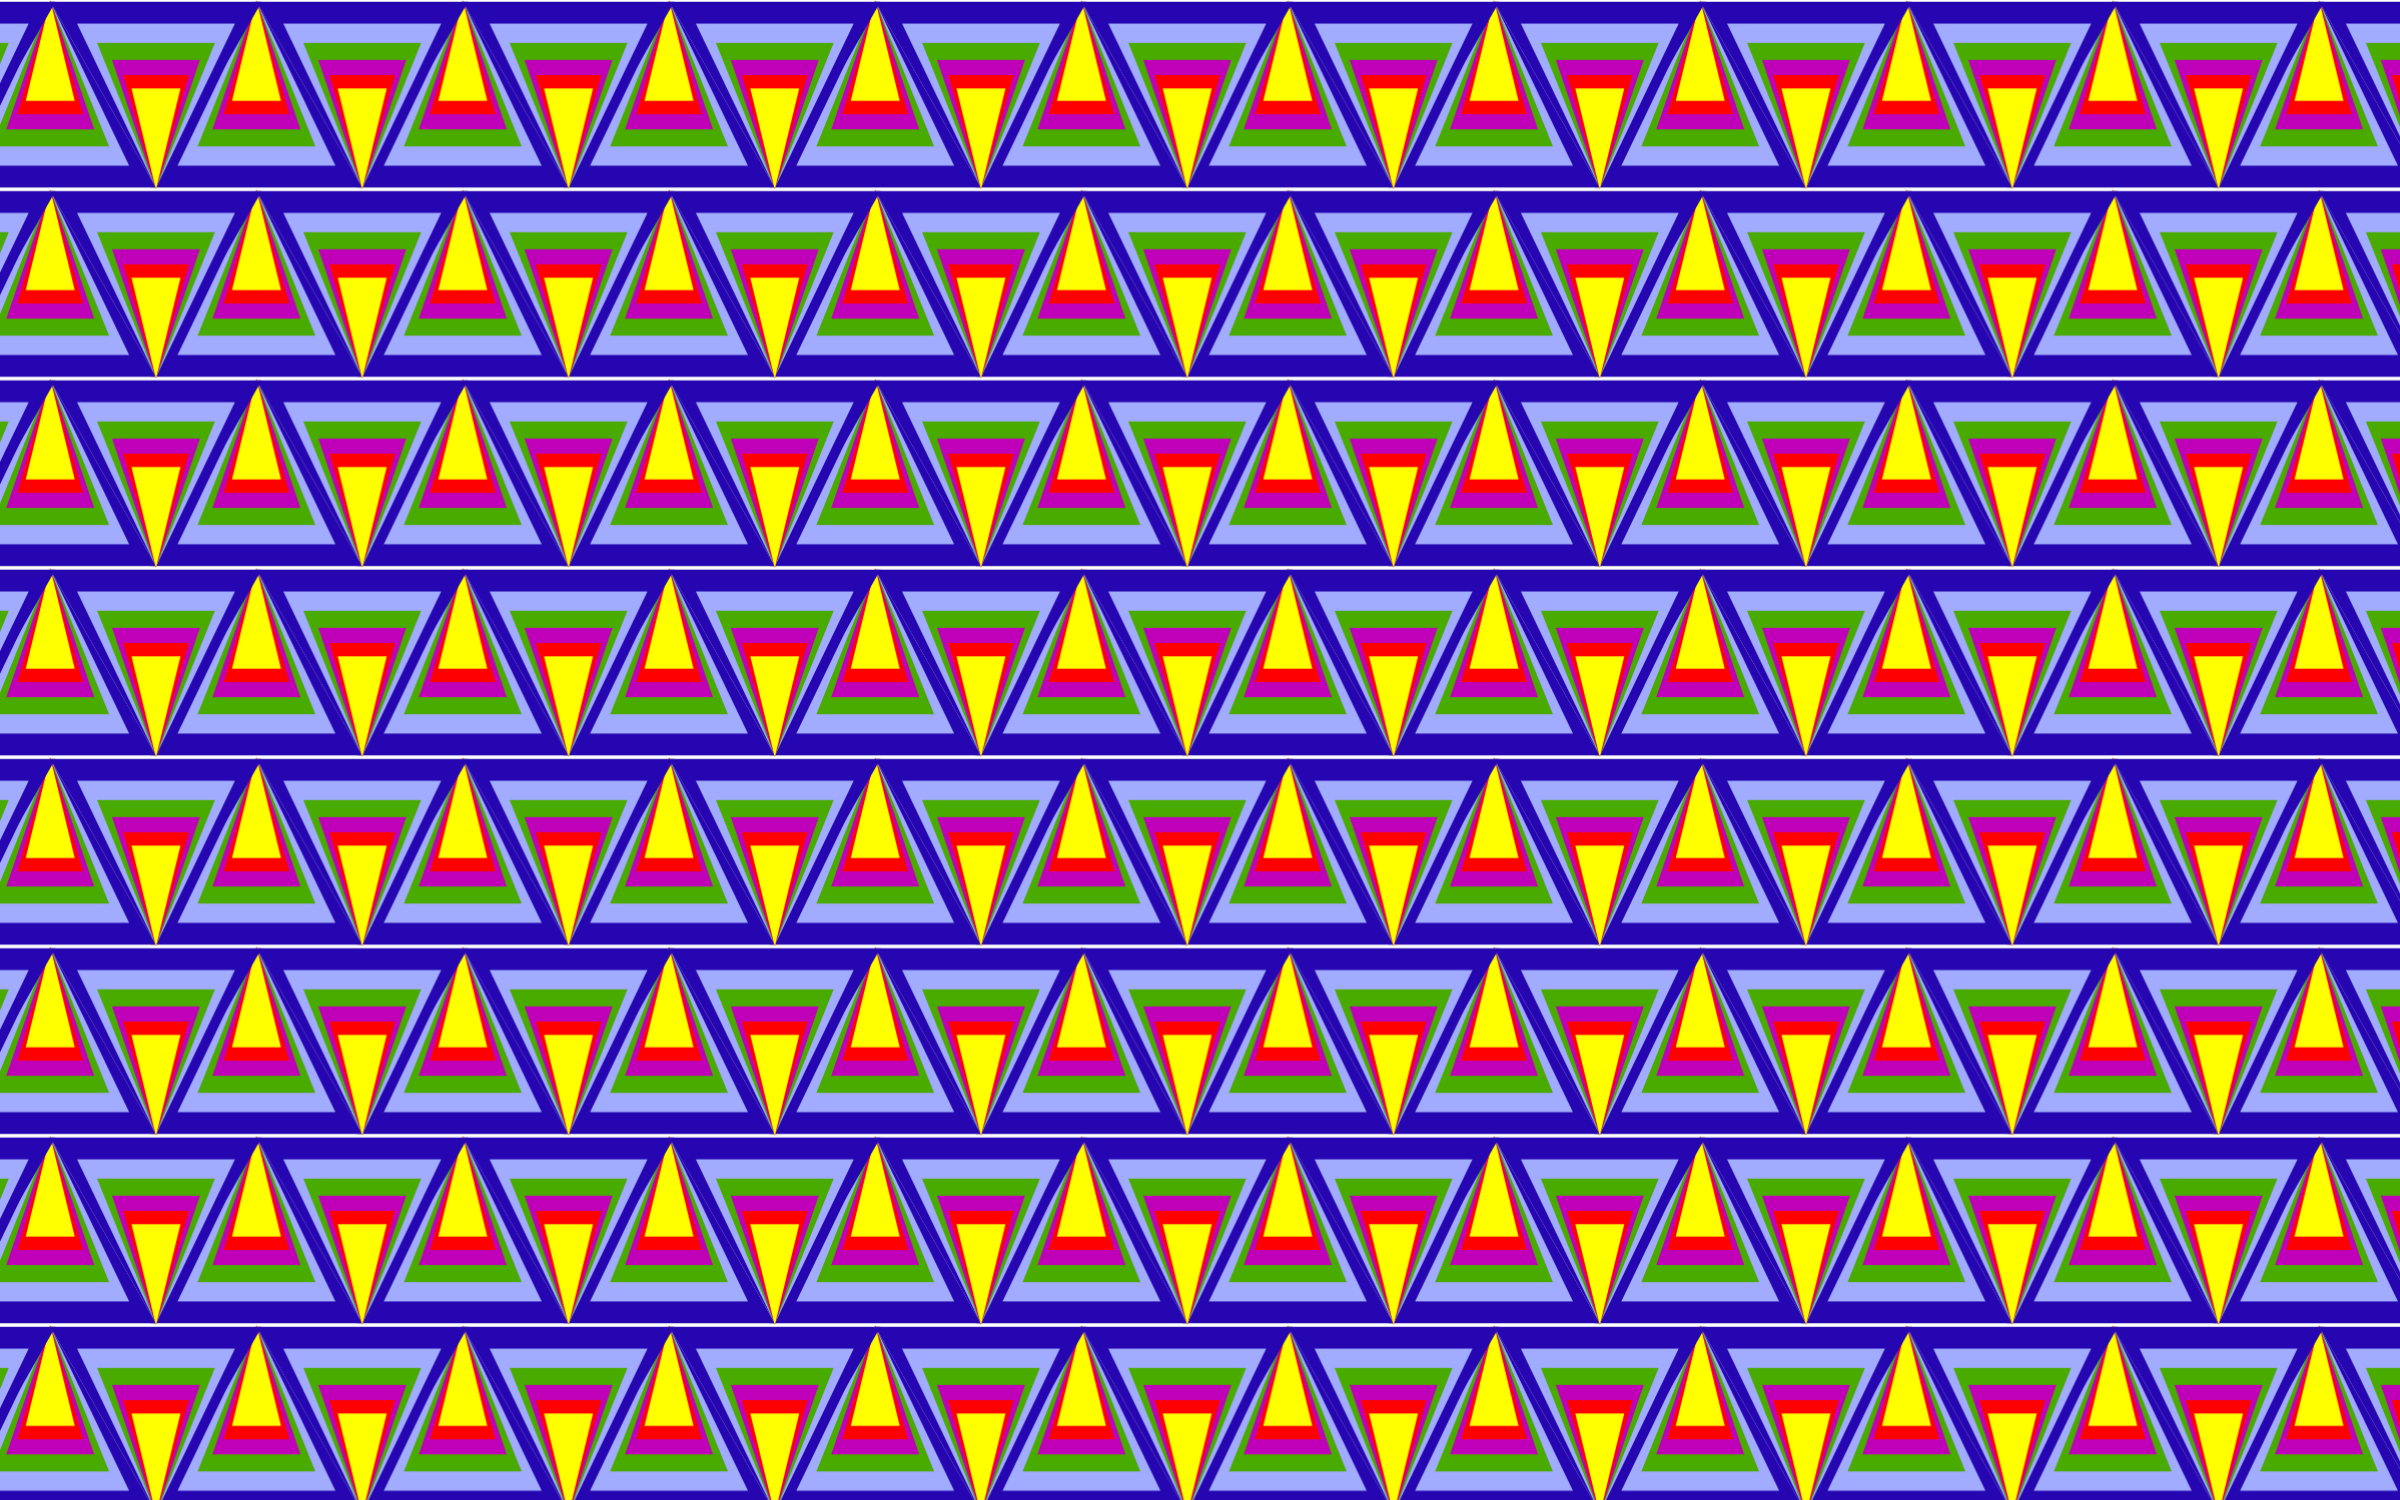 Seamless Prismatic Pythagorean Pattern by GDJ